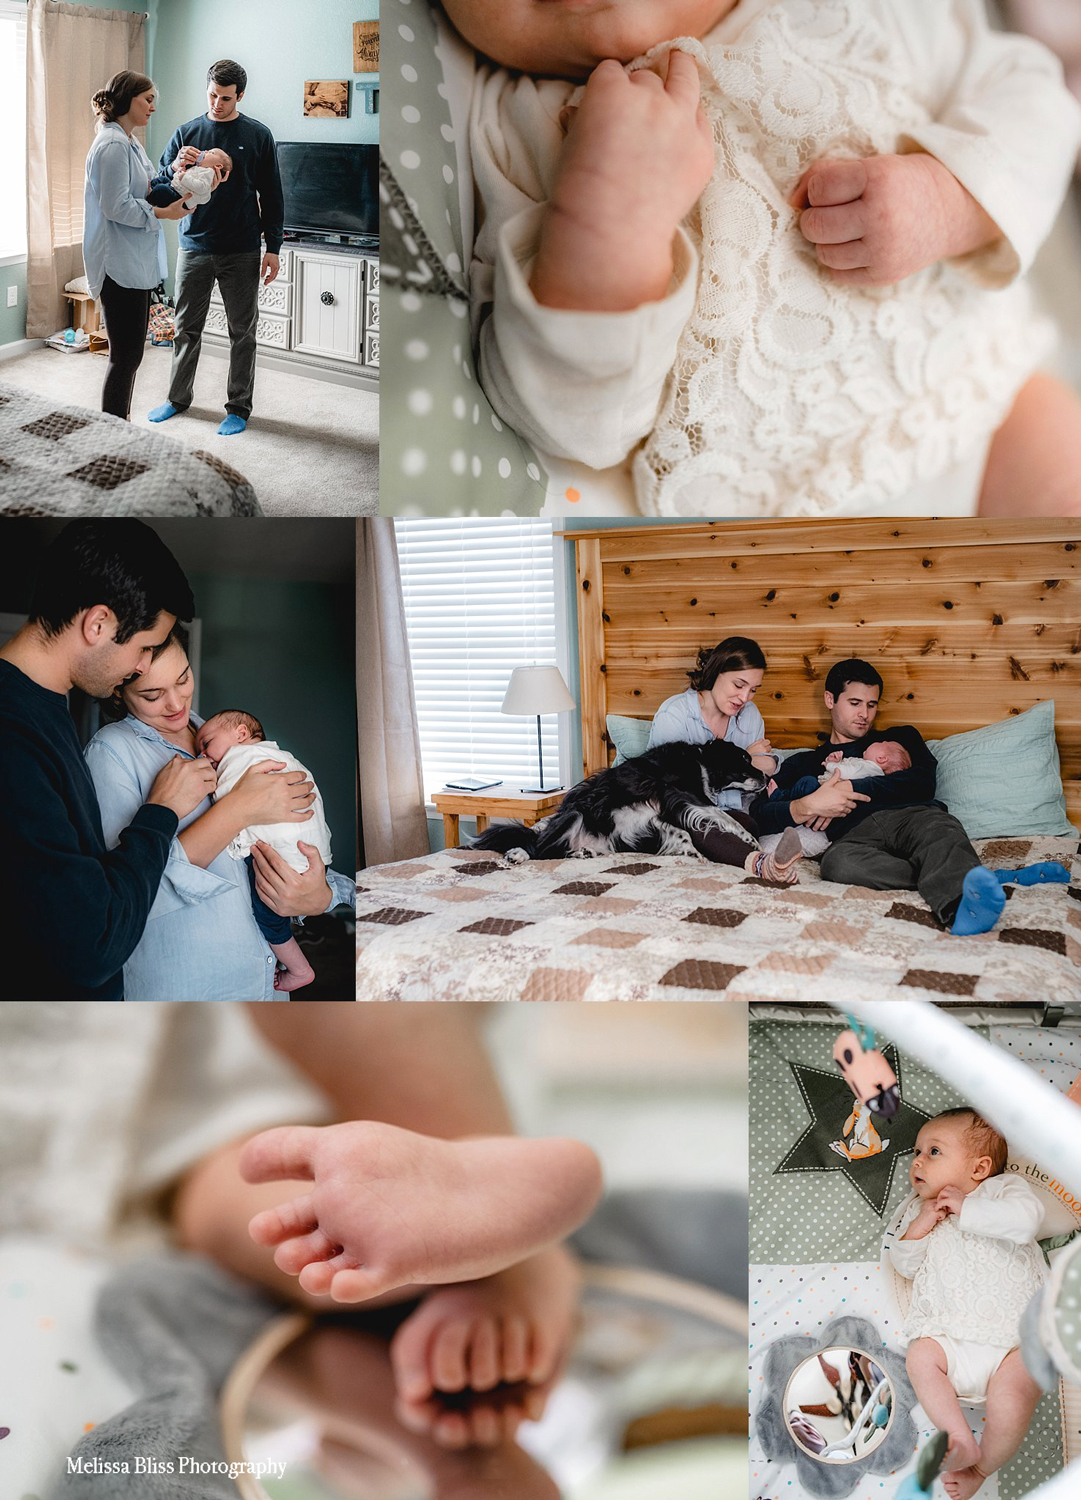 virginia-beach-newborn-lifestyle-photographer-melissa-bliss-photography-newborn-baby-session.jpg